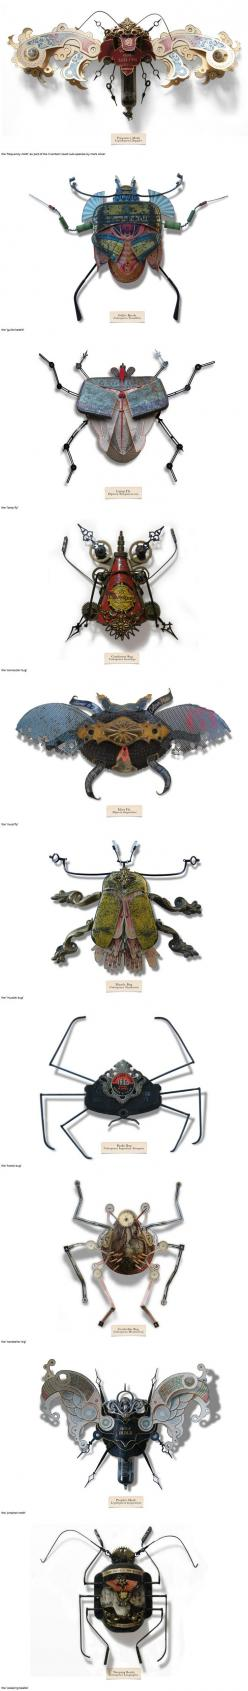 Fantasy | Whimsical | Strange | Mythical | Creative | Creatures | Dolls | Sculptures | Litterbugs from recycled items. By Mark Oliver: Sculpture Ideas, Assembly, Paper, Art Ideas, Life Entirely, Insects Called, Art Insects, Beetle